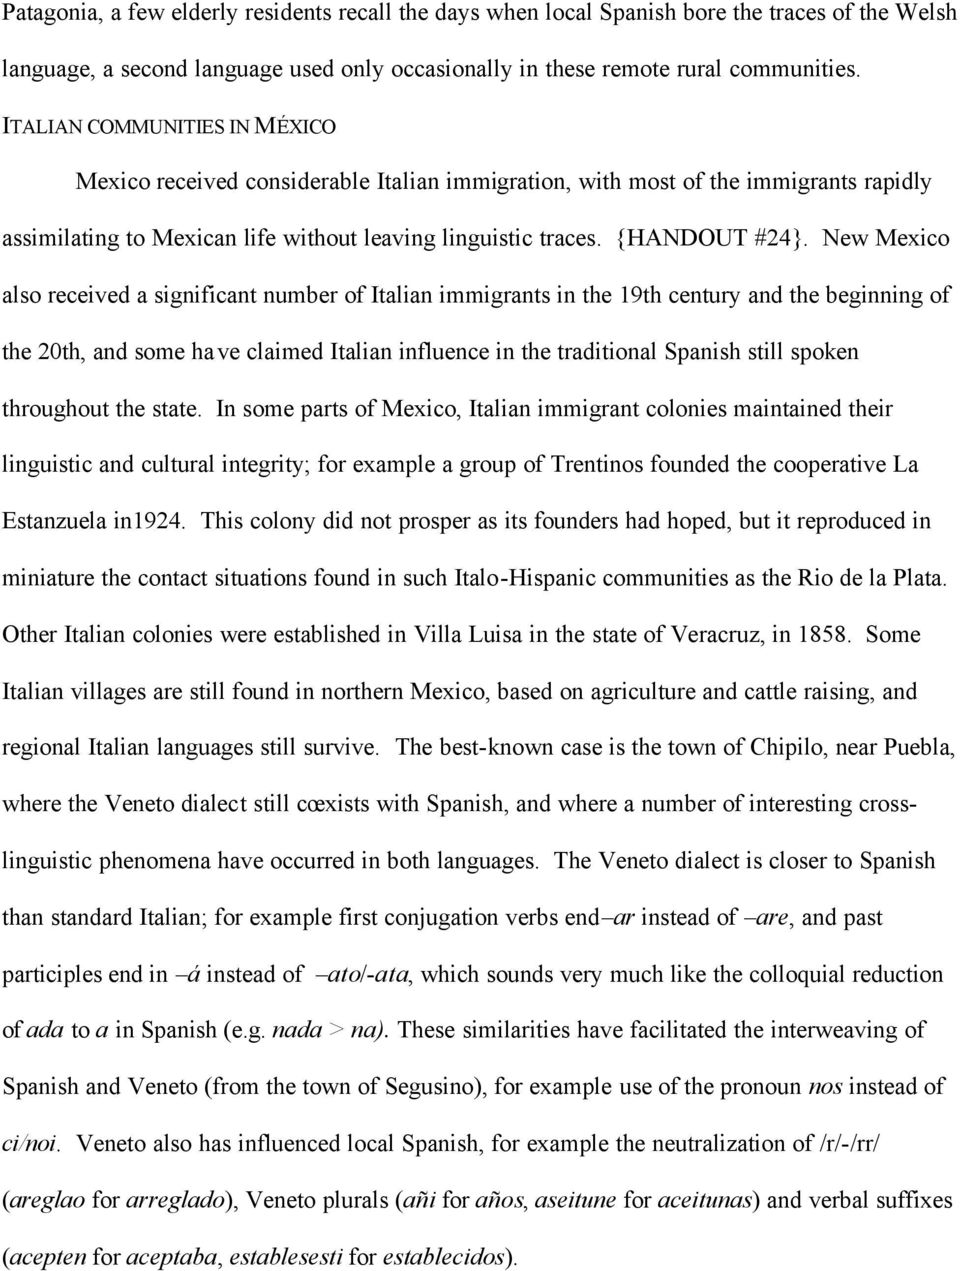 New Mexico also received a significant number of Italian immigrants in the 19th century and the beginning of the 20th, and some have claimed Italian influence in the traditional Spanish still spoken